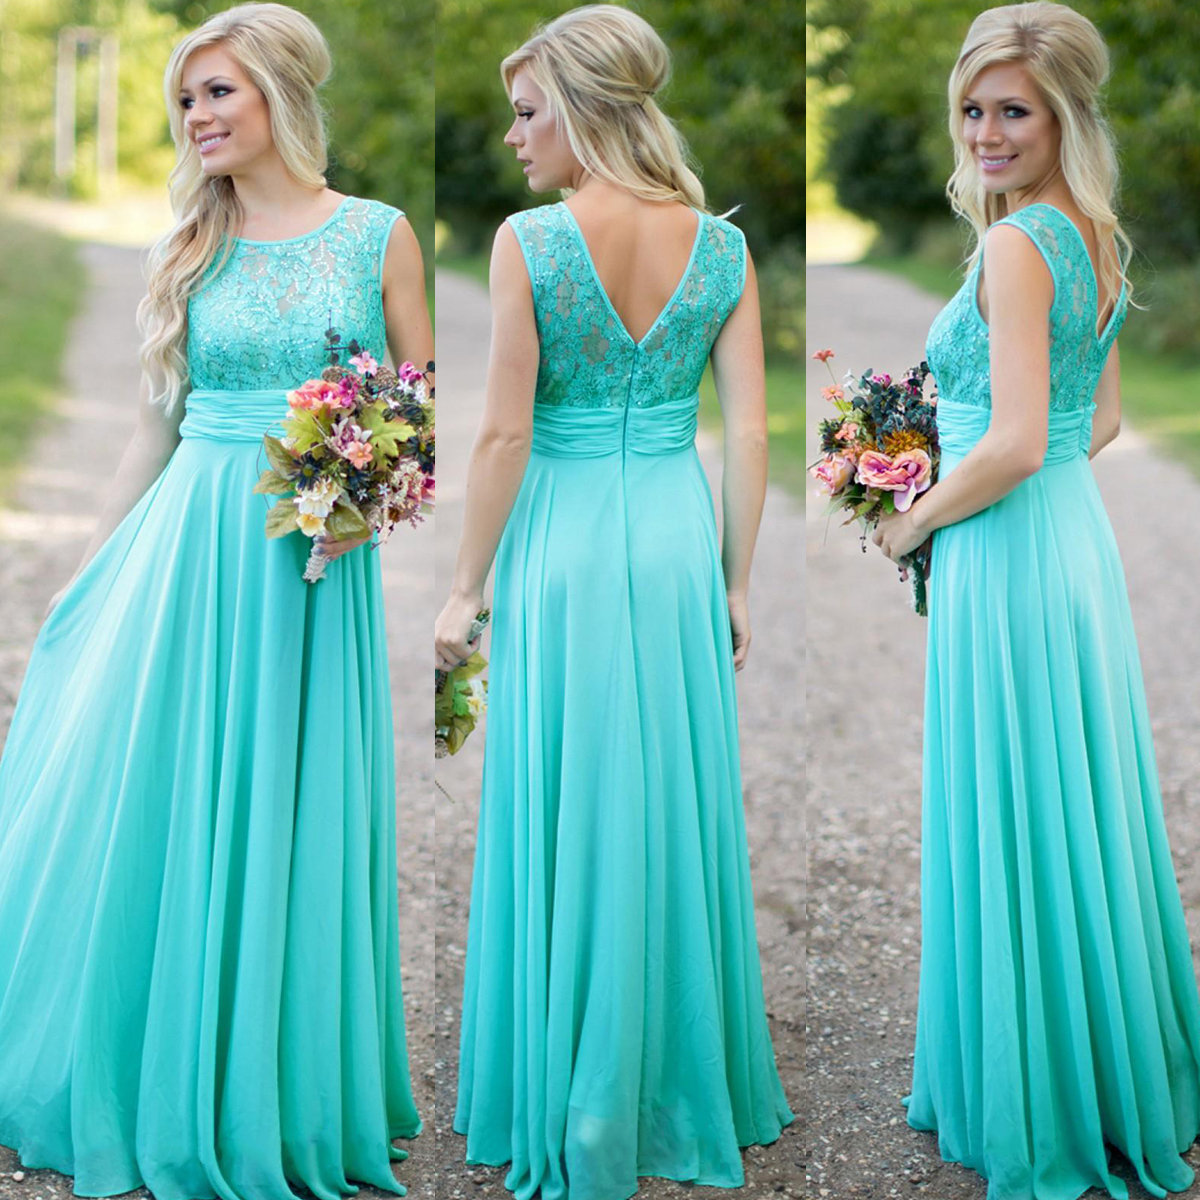 0b497e85105e Turquoise Blue Bridesmaid Dress, Lace Bridesmaid Dress, Long Bridesmaid  Dress, Wedding Party Dress, Cheap Bridesmaid Dress, Chiffon Bridesmaid Dress,  ...